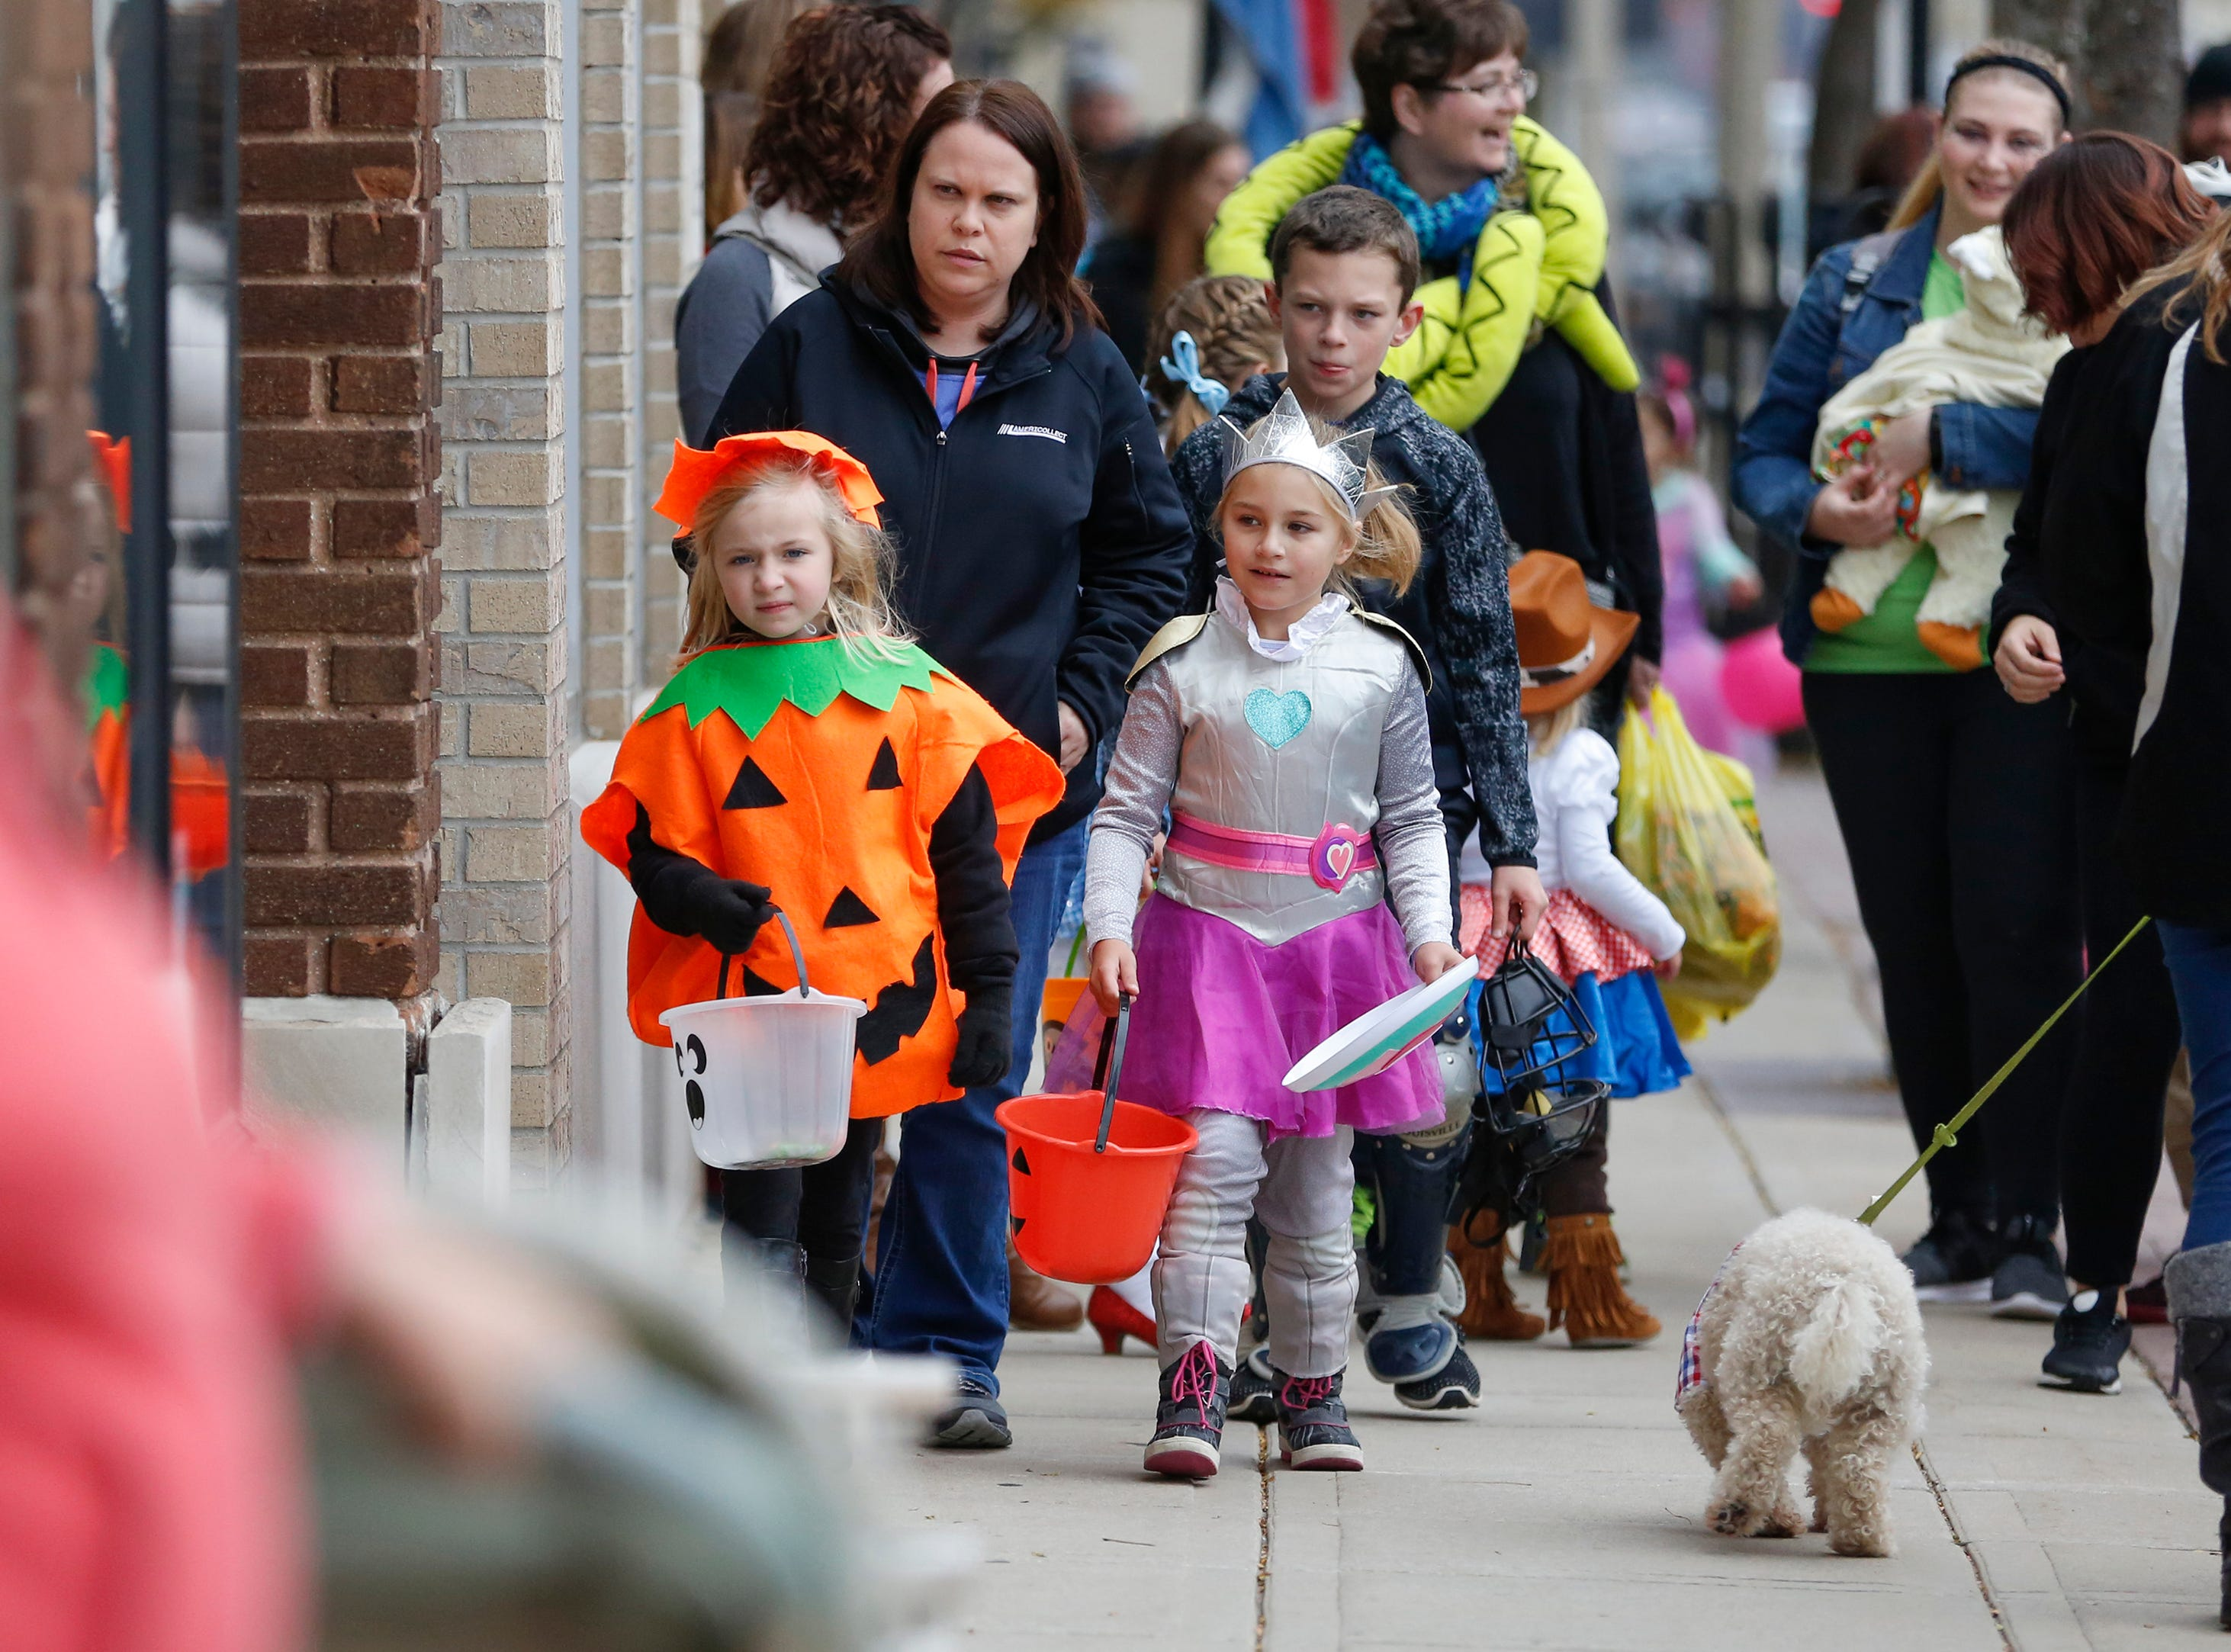 Trick or treaters make their way down Washington Street during Downtown Trick or Treat Saturday, October 27, 2018, in Two Rivers, Wis. Joshua Clark/USA TODAY NETWORK-Wisconsin